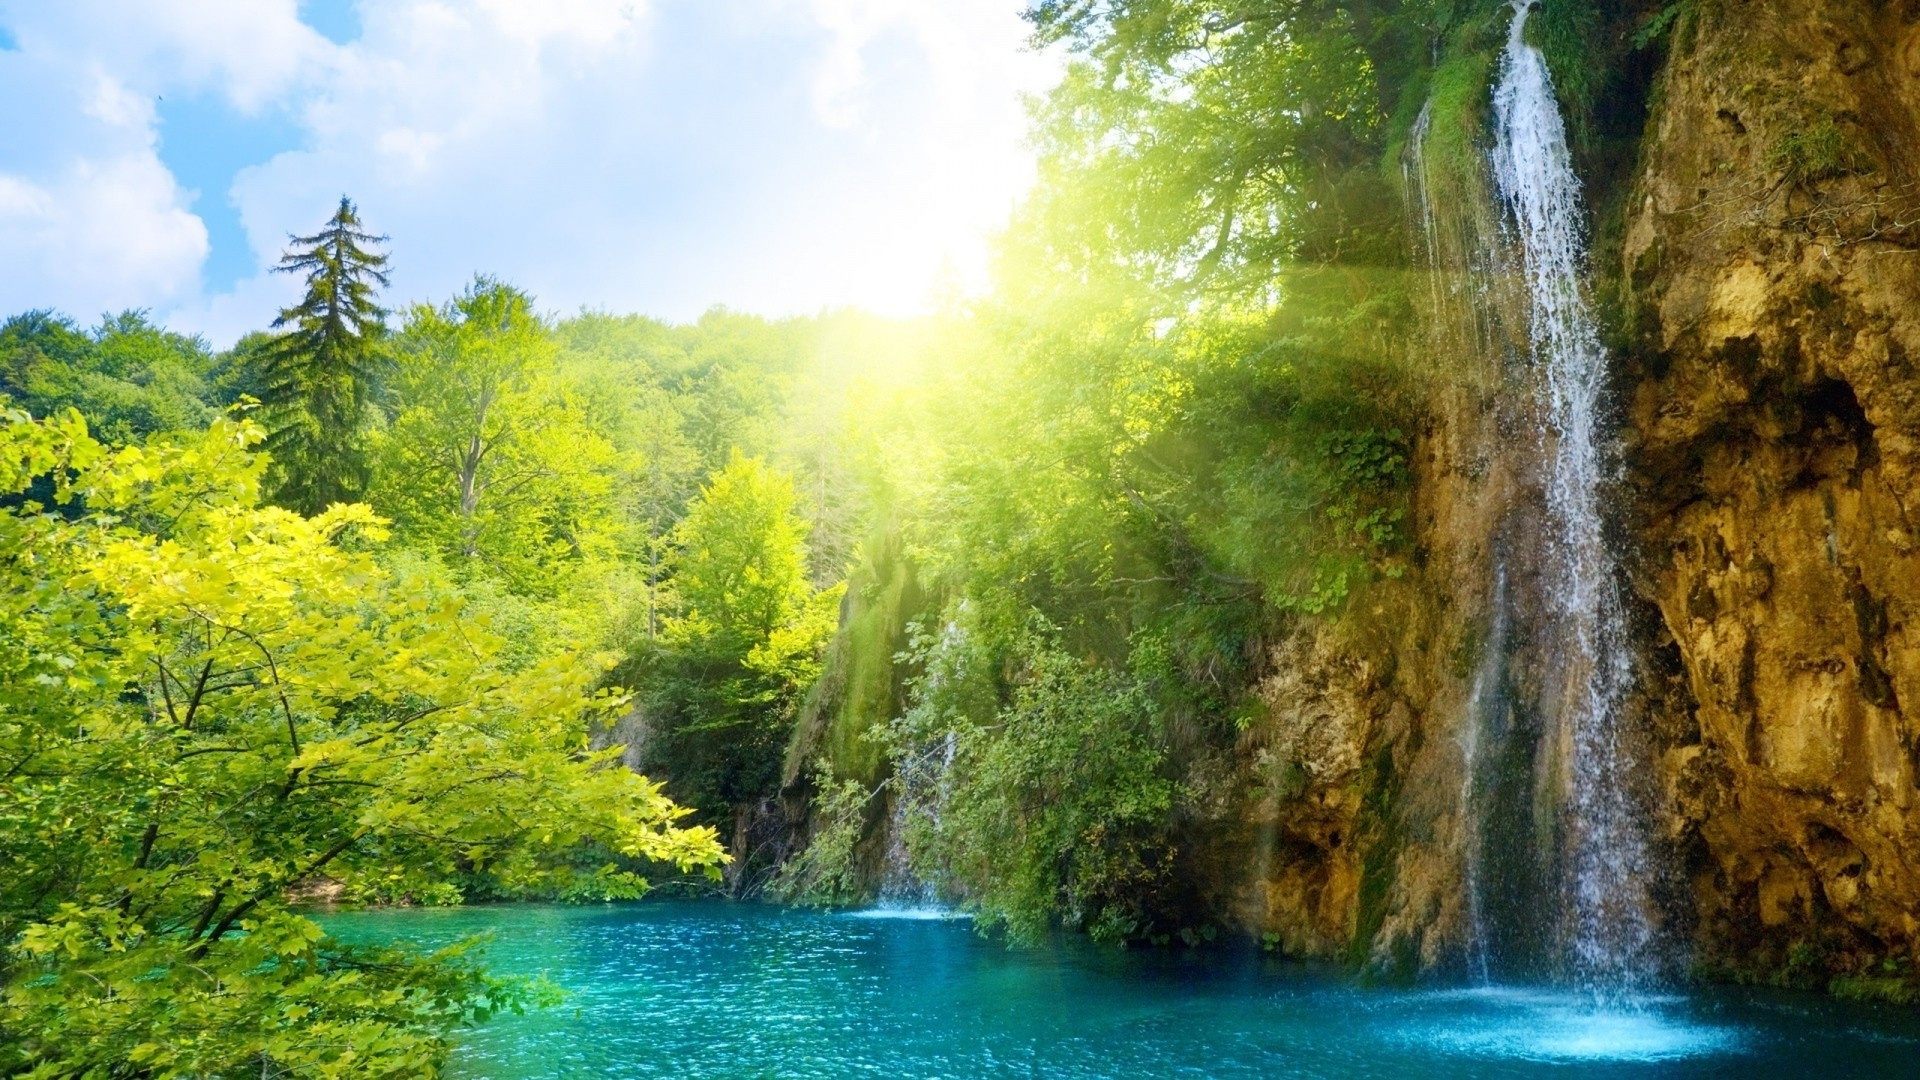 Amazing nature pictures download